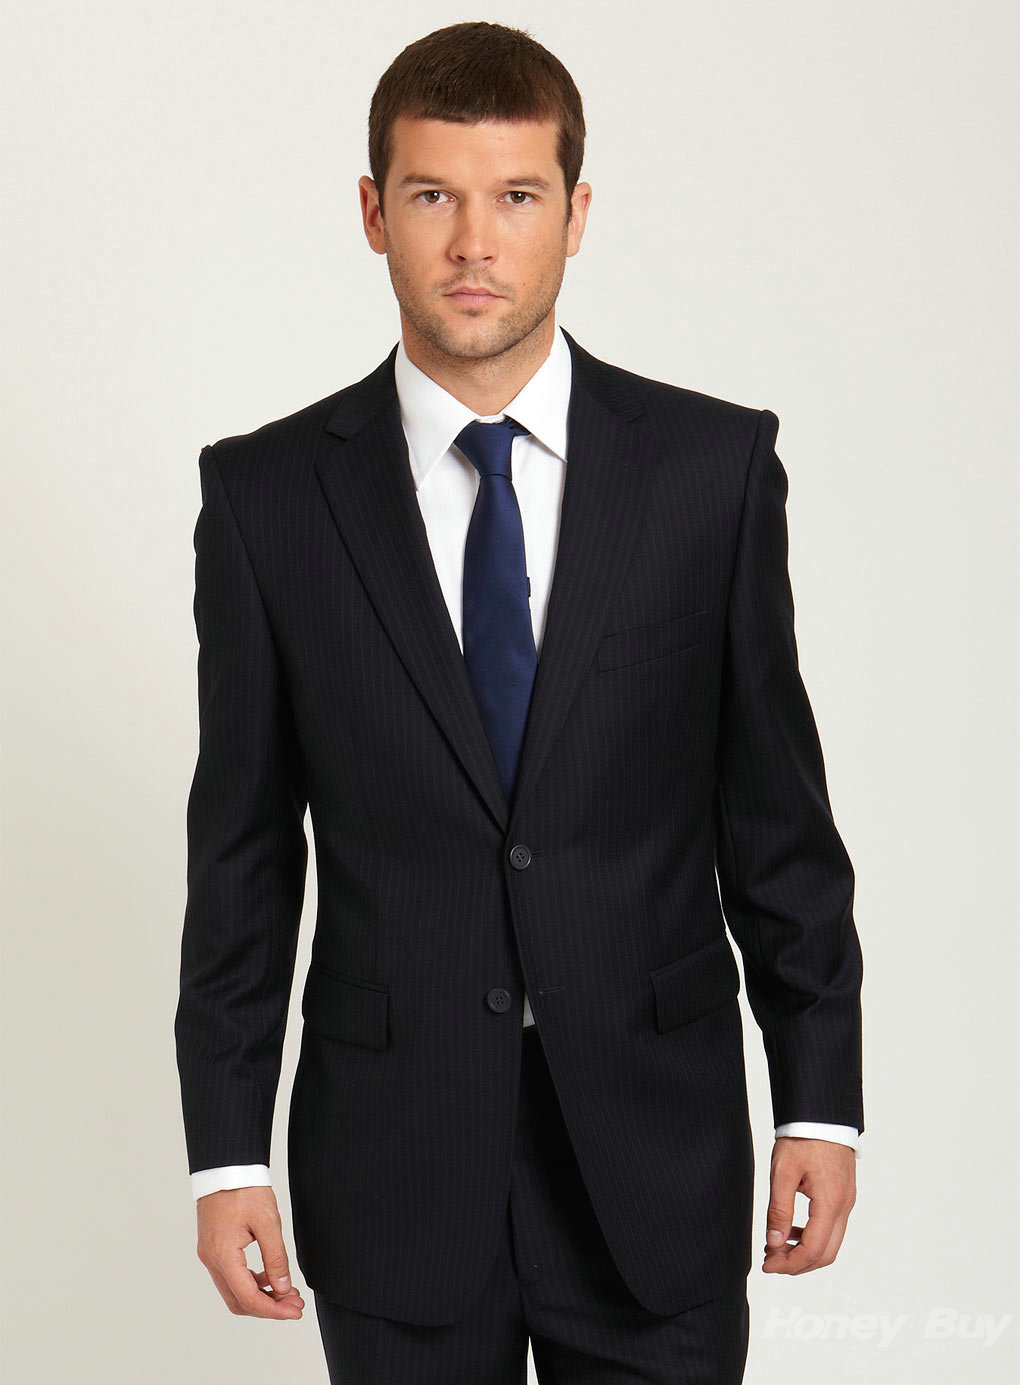 classic new arrival design notch lapel pinstripe business suit dyolbwy